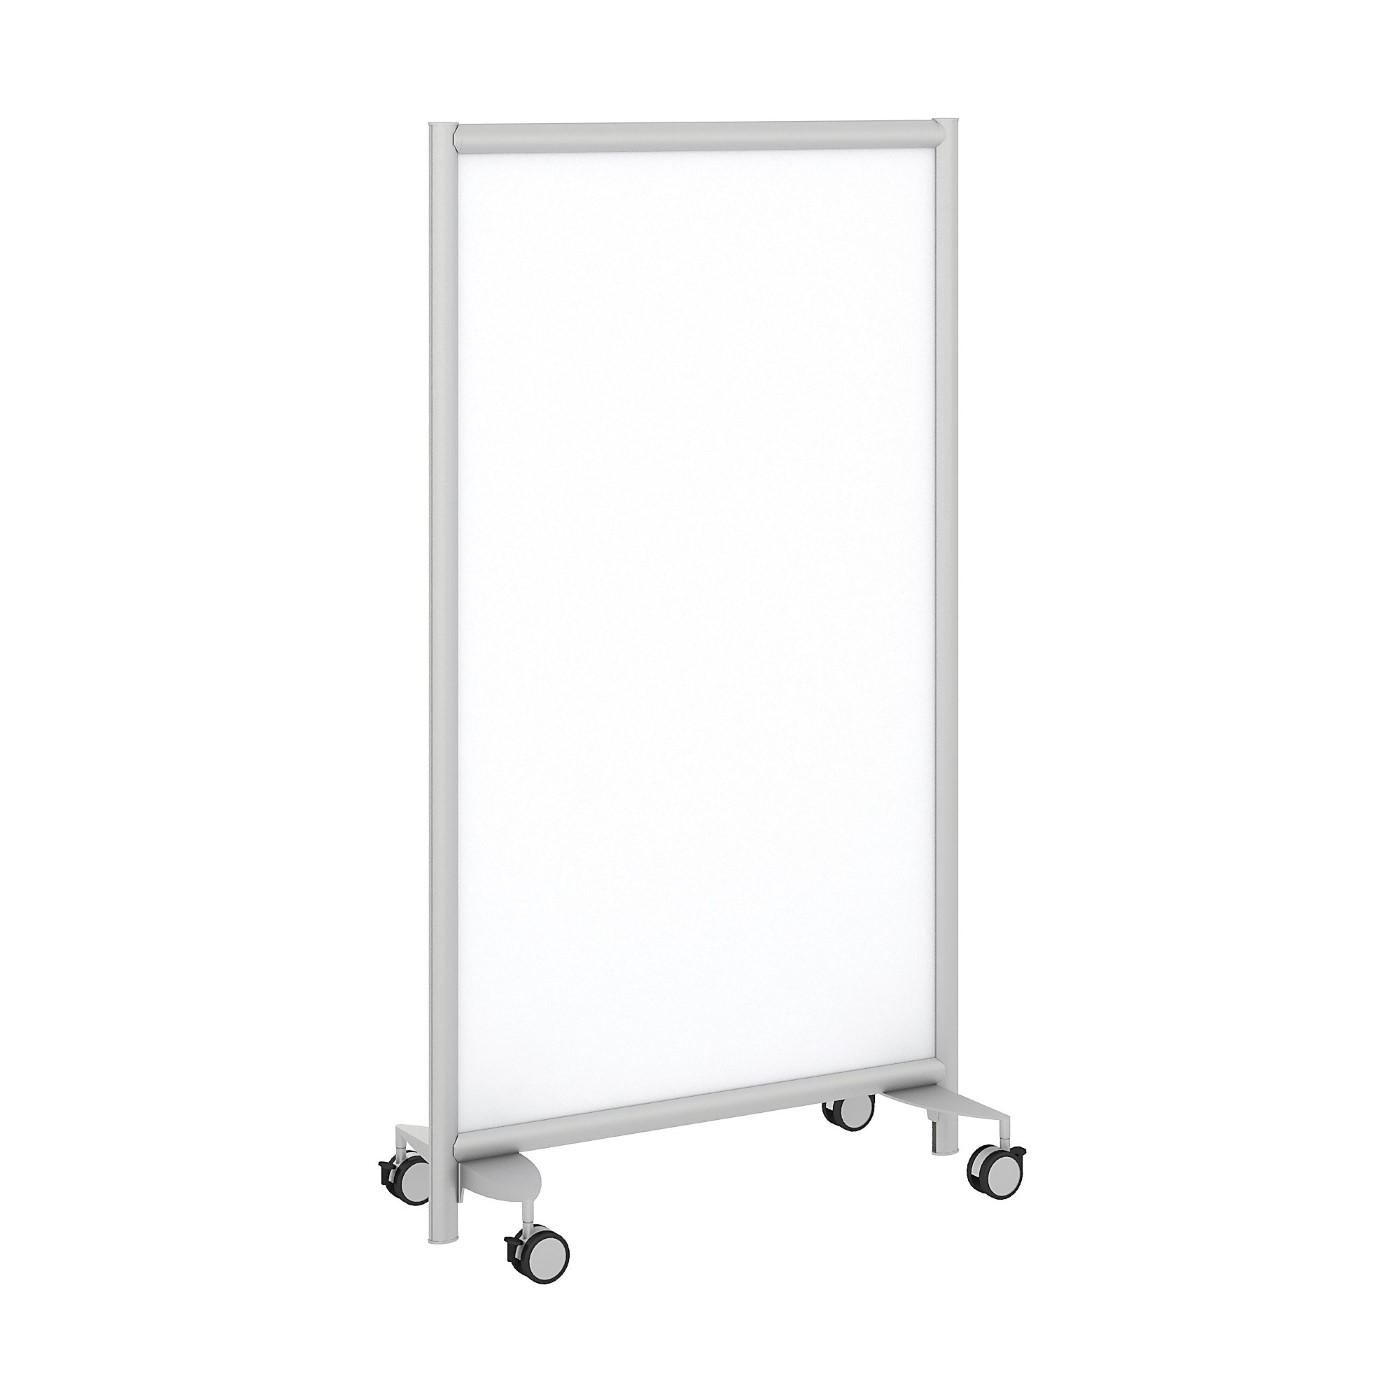 BUSH BUSINESS FURNITURE FREESTANDING WHITE BOARD PRIVACY PANEL WITH WHEELED BASE. FREE SHIPPING SALE DEDUCT 10% MORE ENTER '10percent' IN COUPON CODE BOX WHILE CHECKING OUT. ENDS 5-31-20.